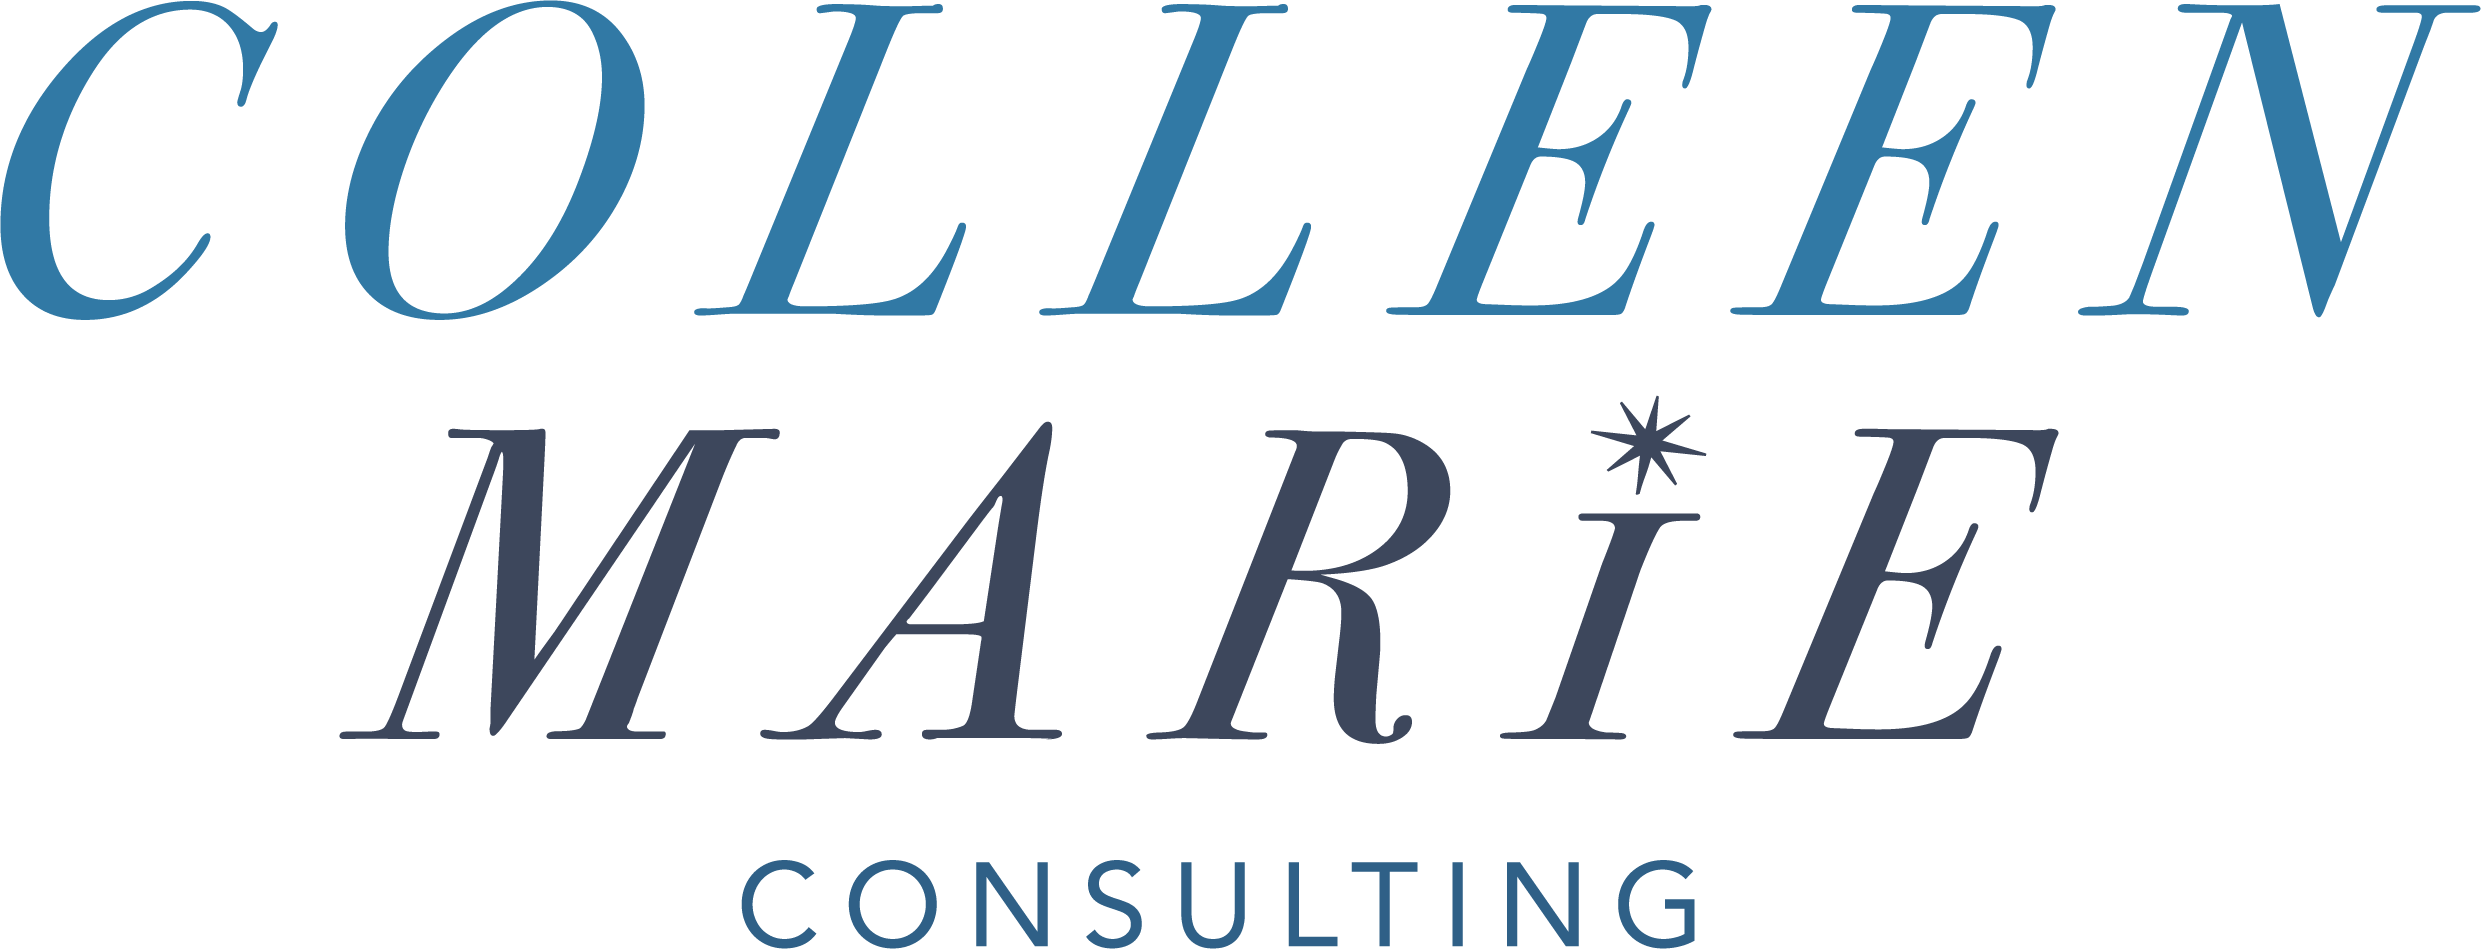 Colleen Marie Consulting